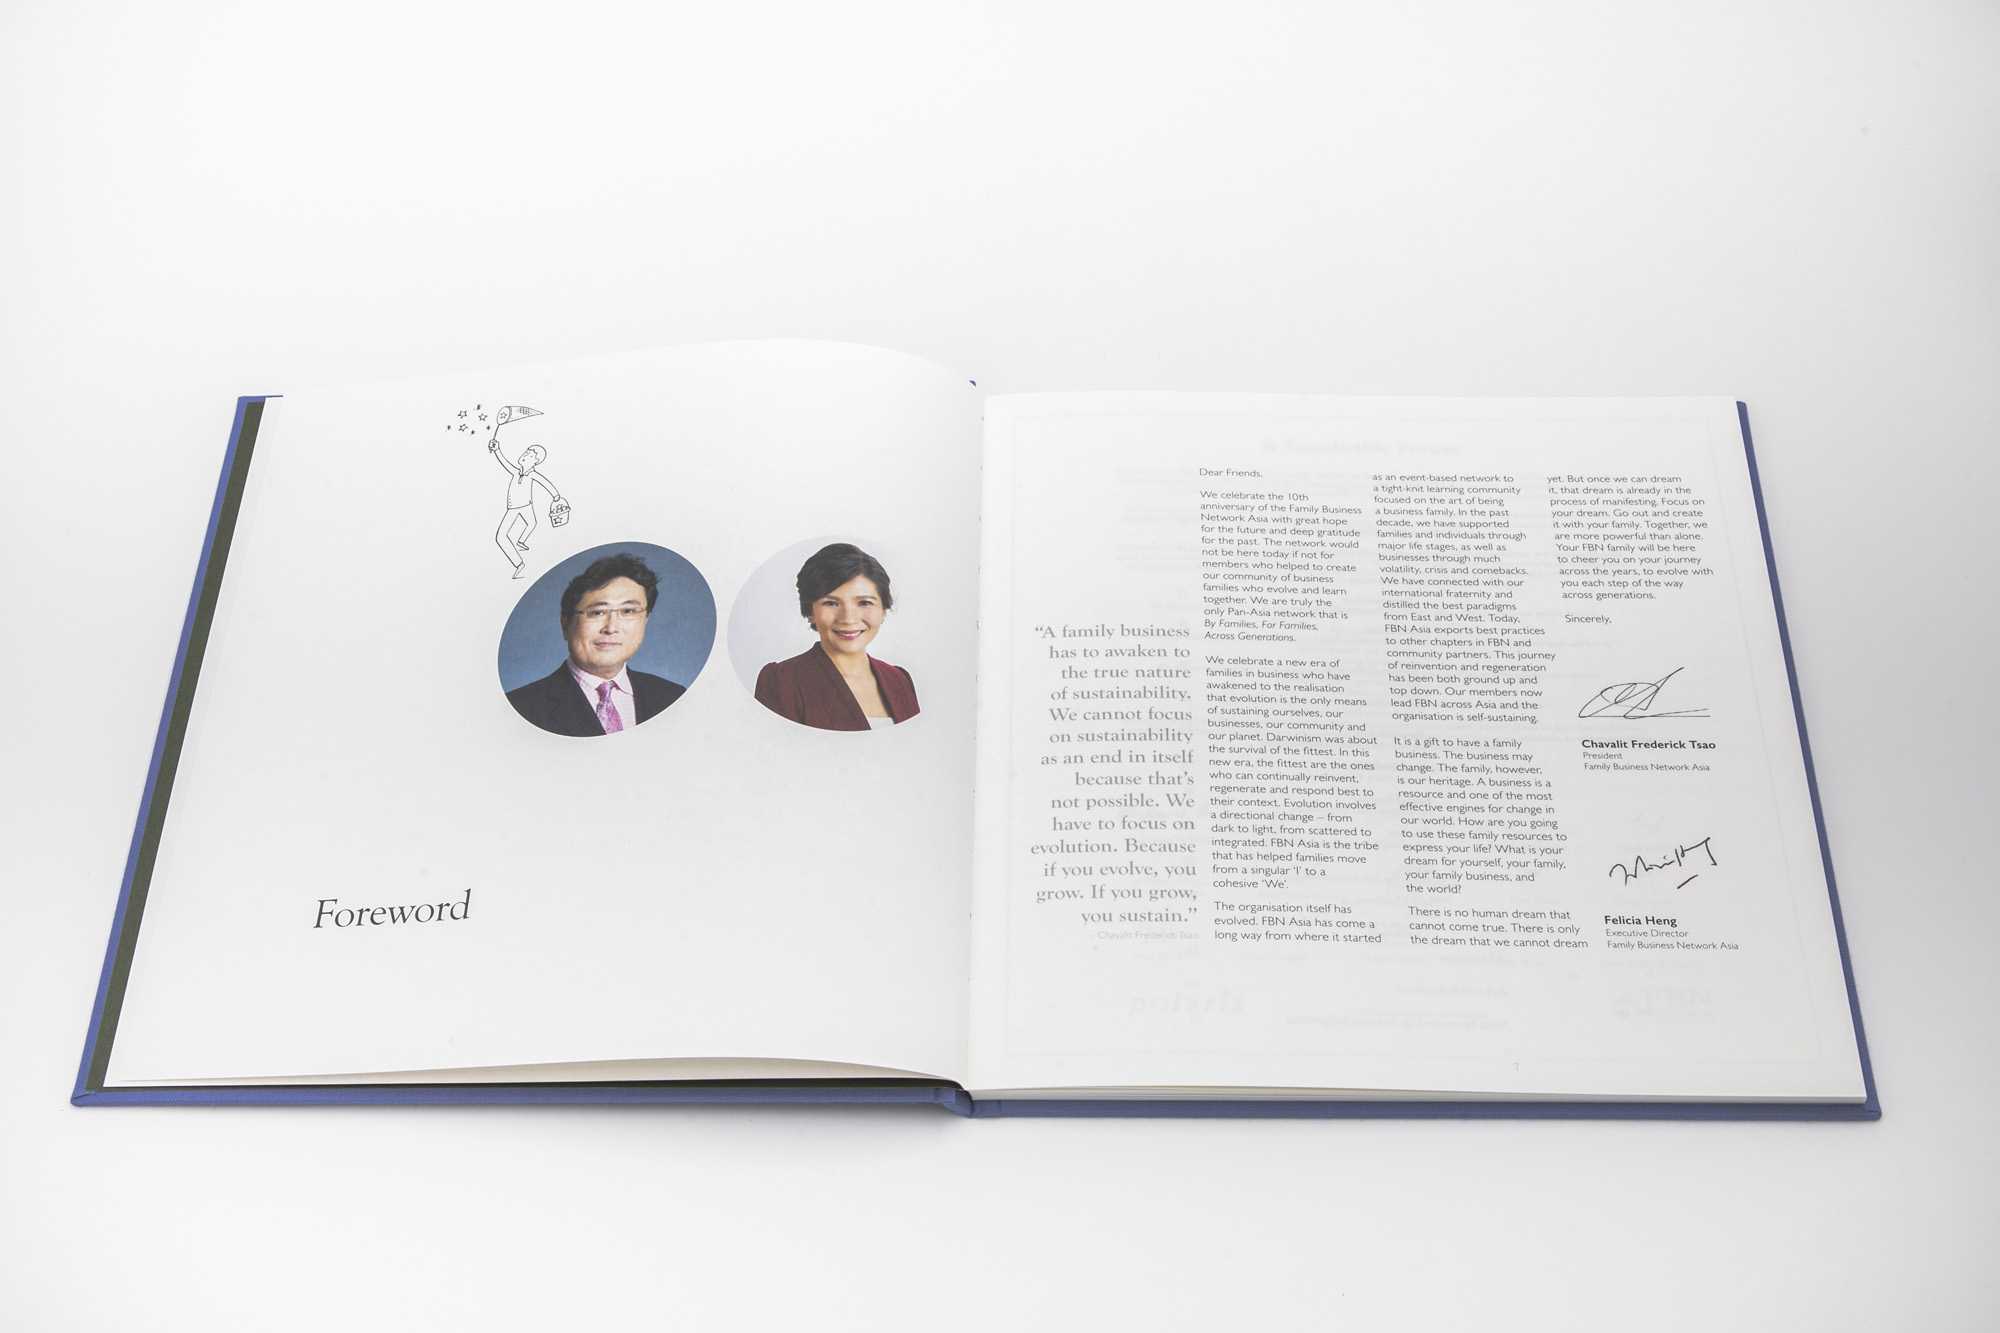 Family Business Network (FBN) Asia, 10th Anniversary Commemorative Book